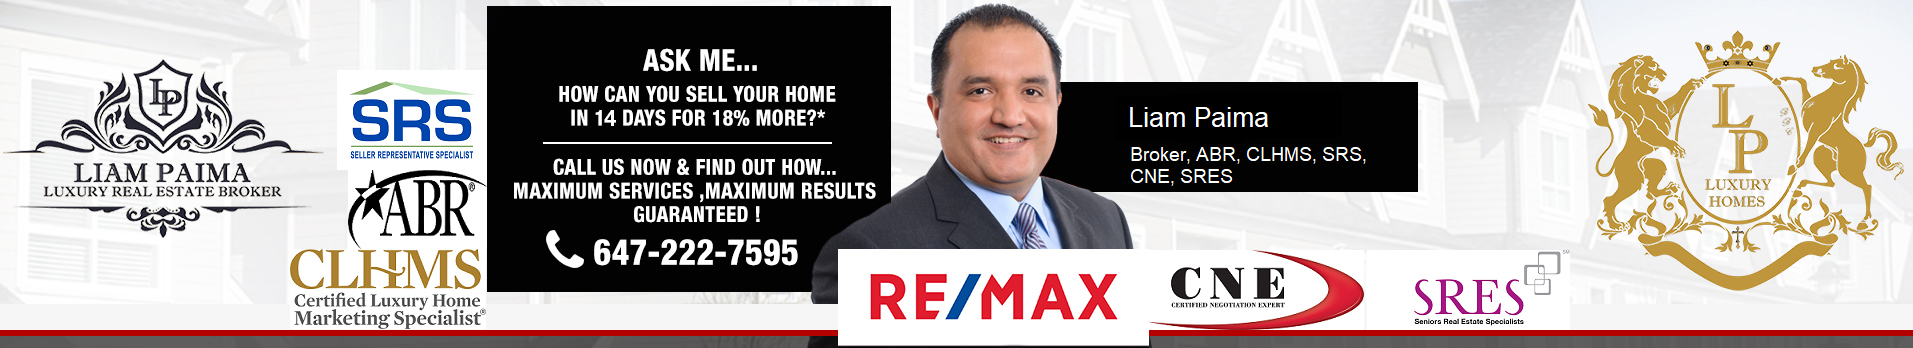 #1 Low Commission Real Estate Agent With Best Low Real Estate Commission Service In Toronto, Vaughan, Kleinburg, Oakville, Richmond Hill, Mississauga, Brampton, Milton, Caledon, Georgetown, Burlington, Orangeville, Markham